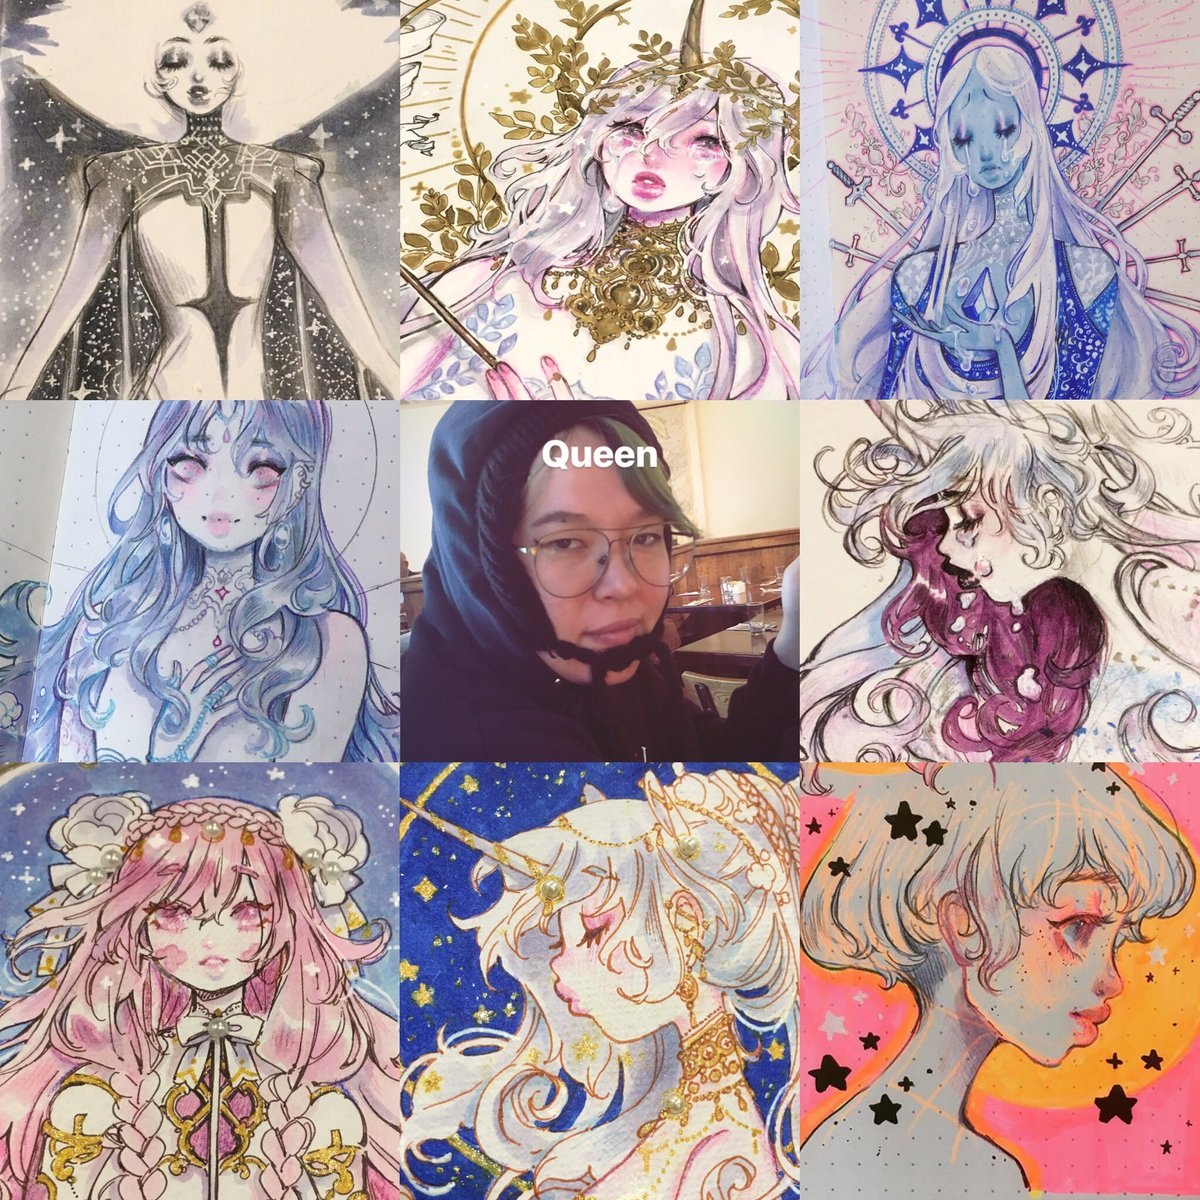 ginger @ rainy town's photo on #artvsartist